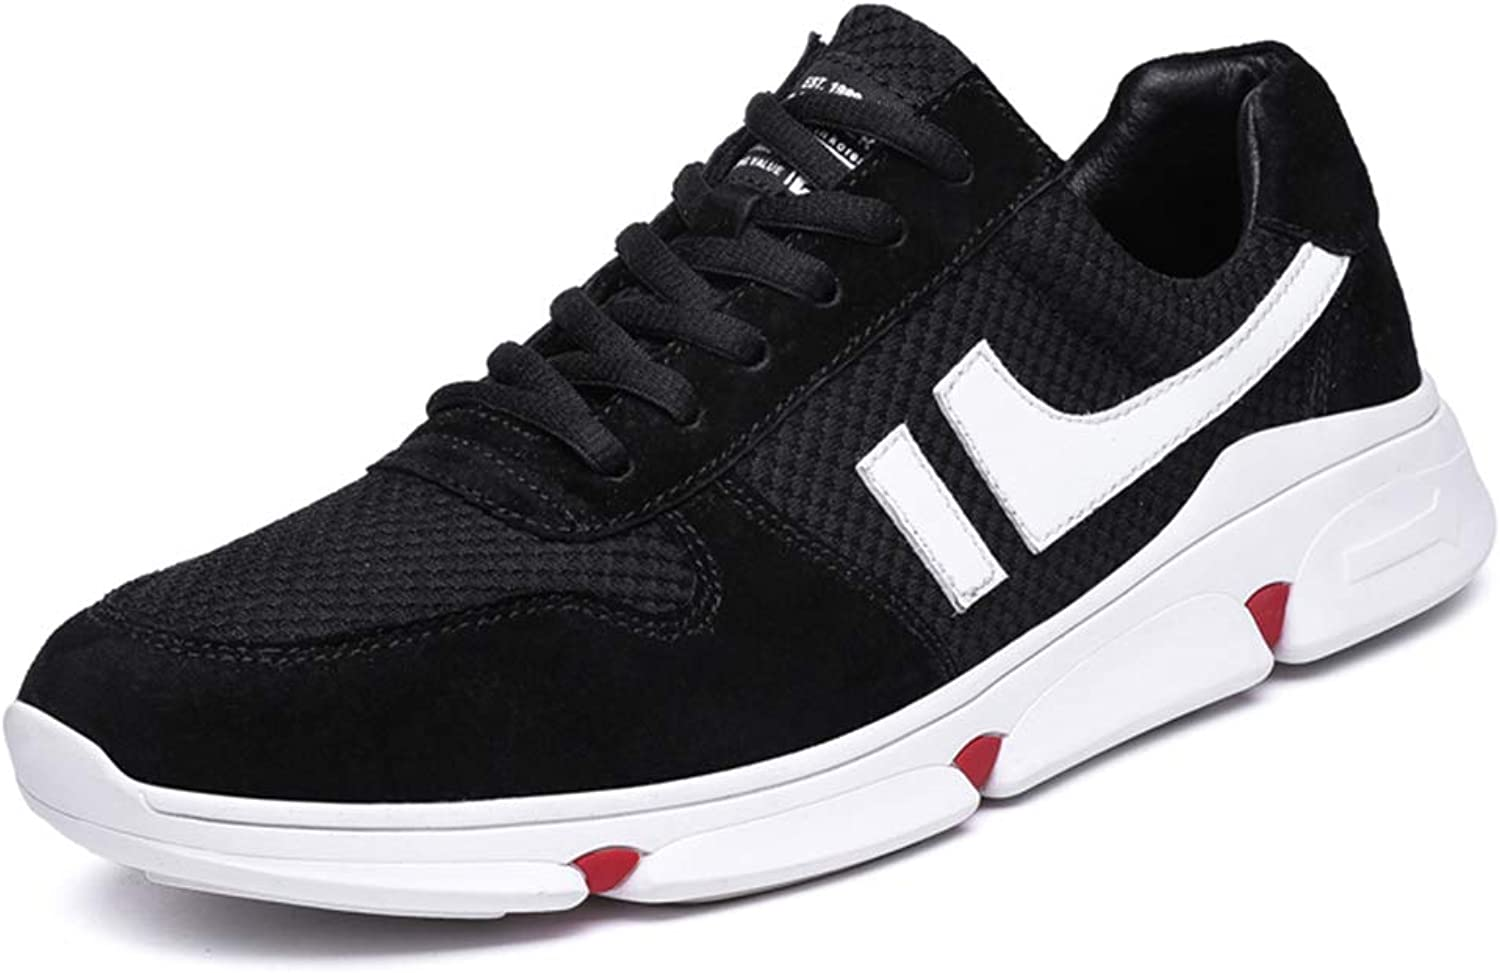 HDWY Sports And Leisure Trend Youth Students Hundred Ride The British Casual Sports Small White shoes Men's shoes Breathable